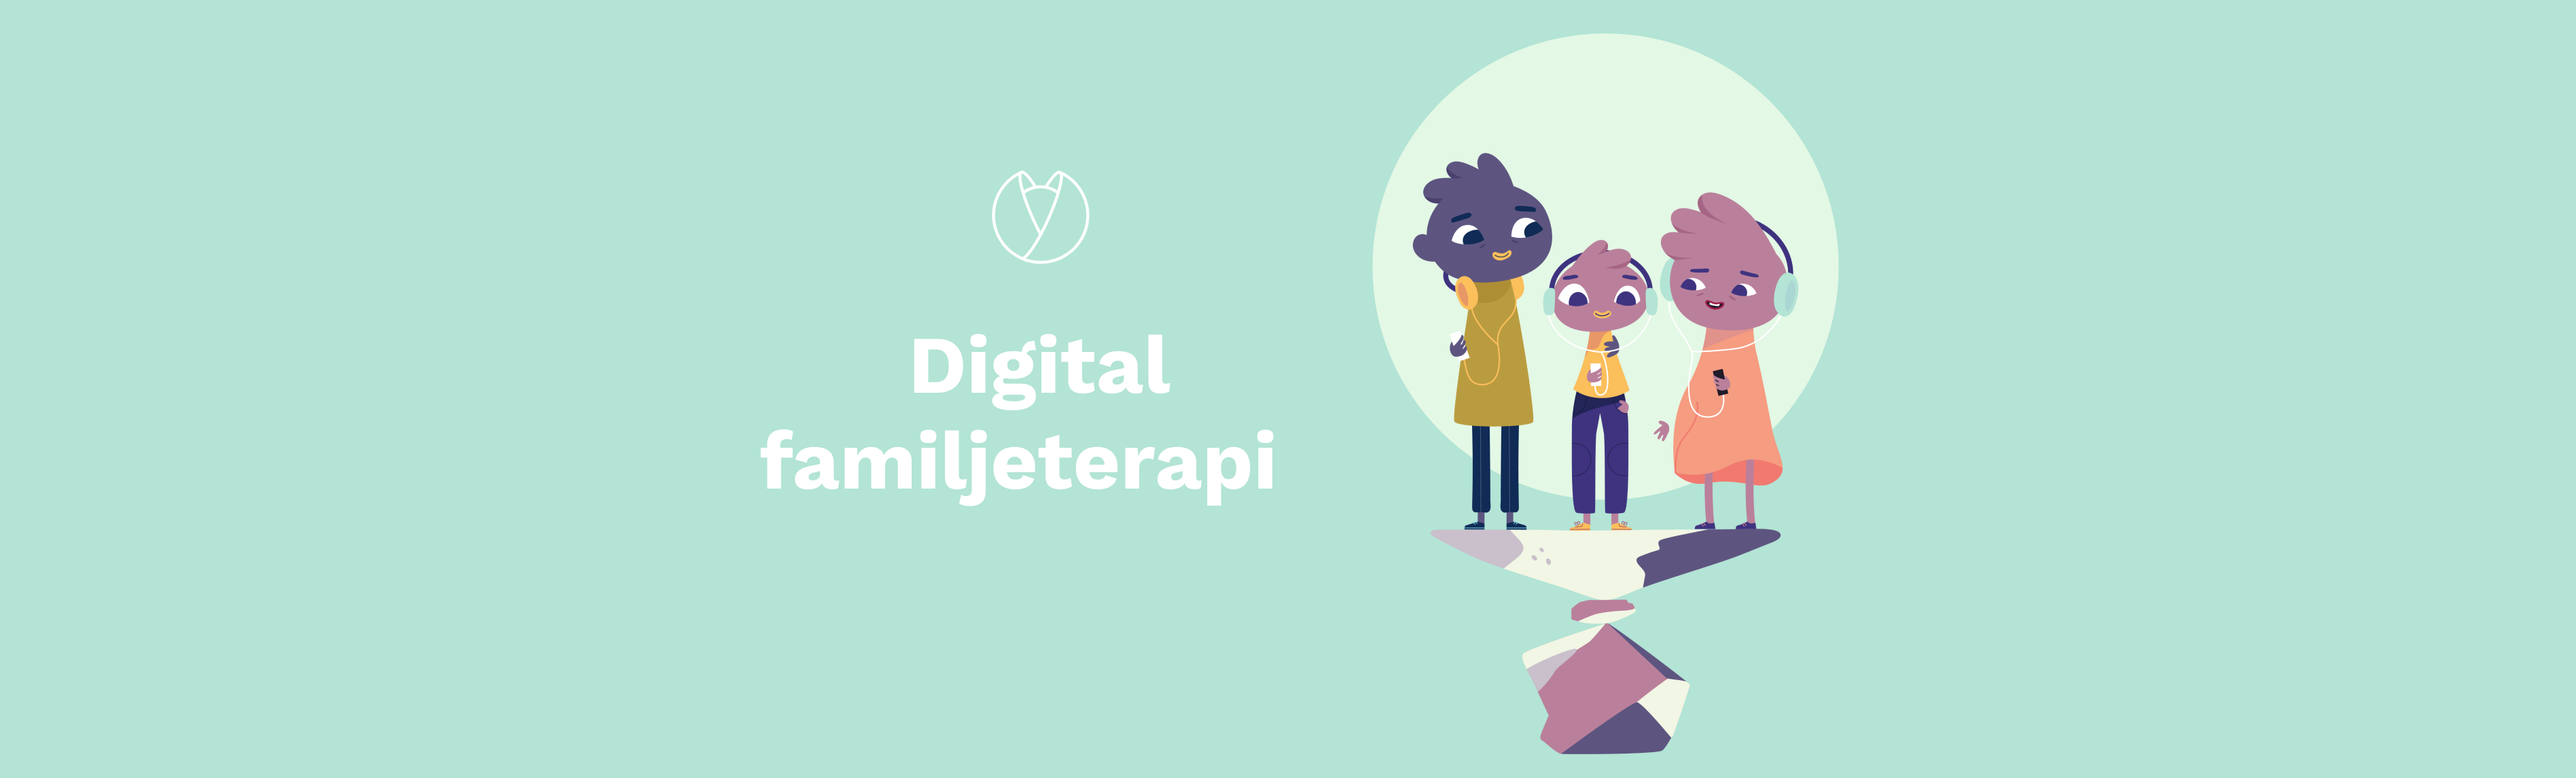 Digital familjeterapi